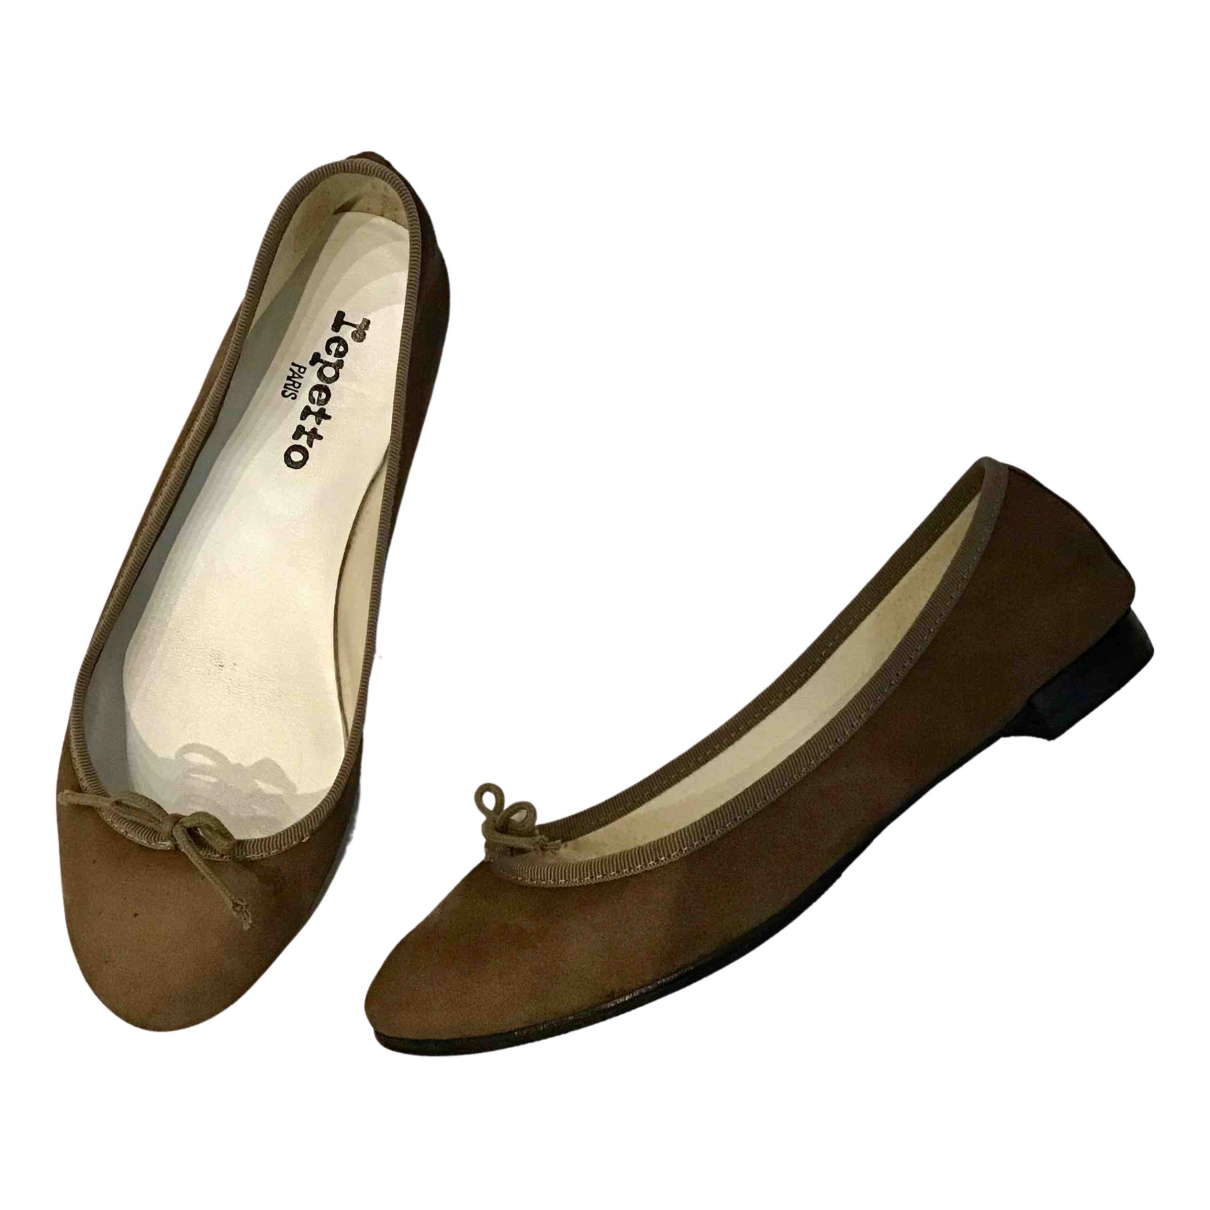 Repetto N Camel Suede Ballet flats for Women 38 EU